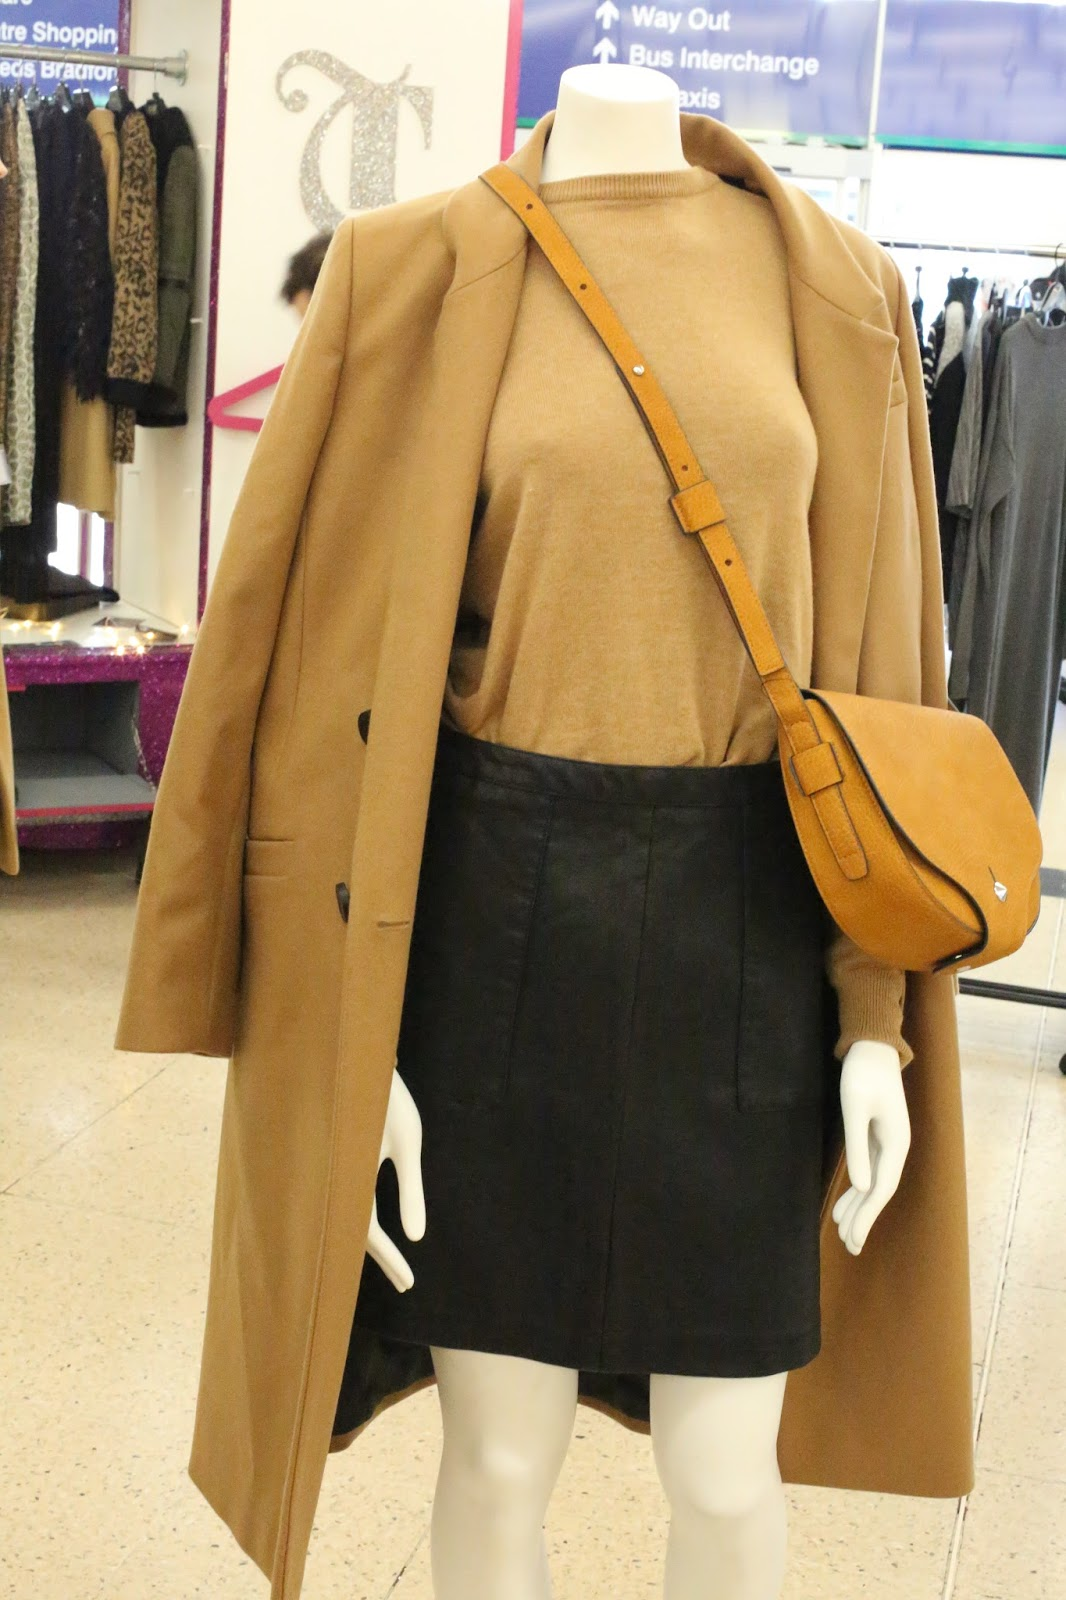 m&s winter coat